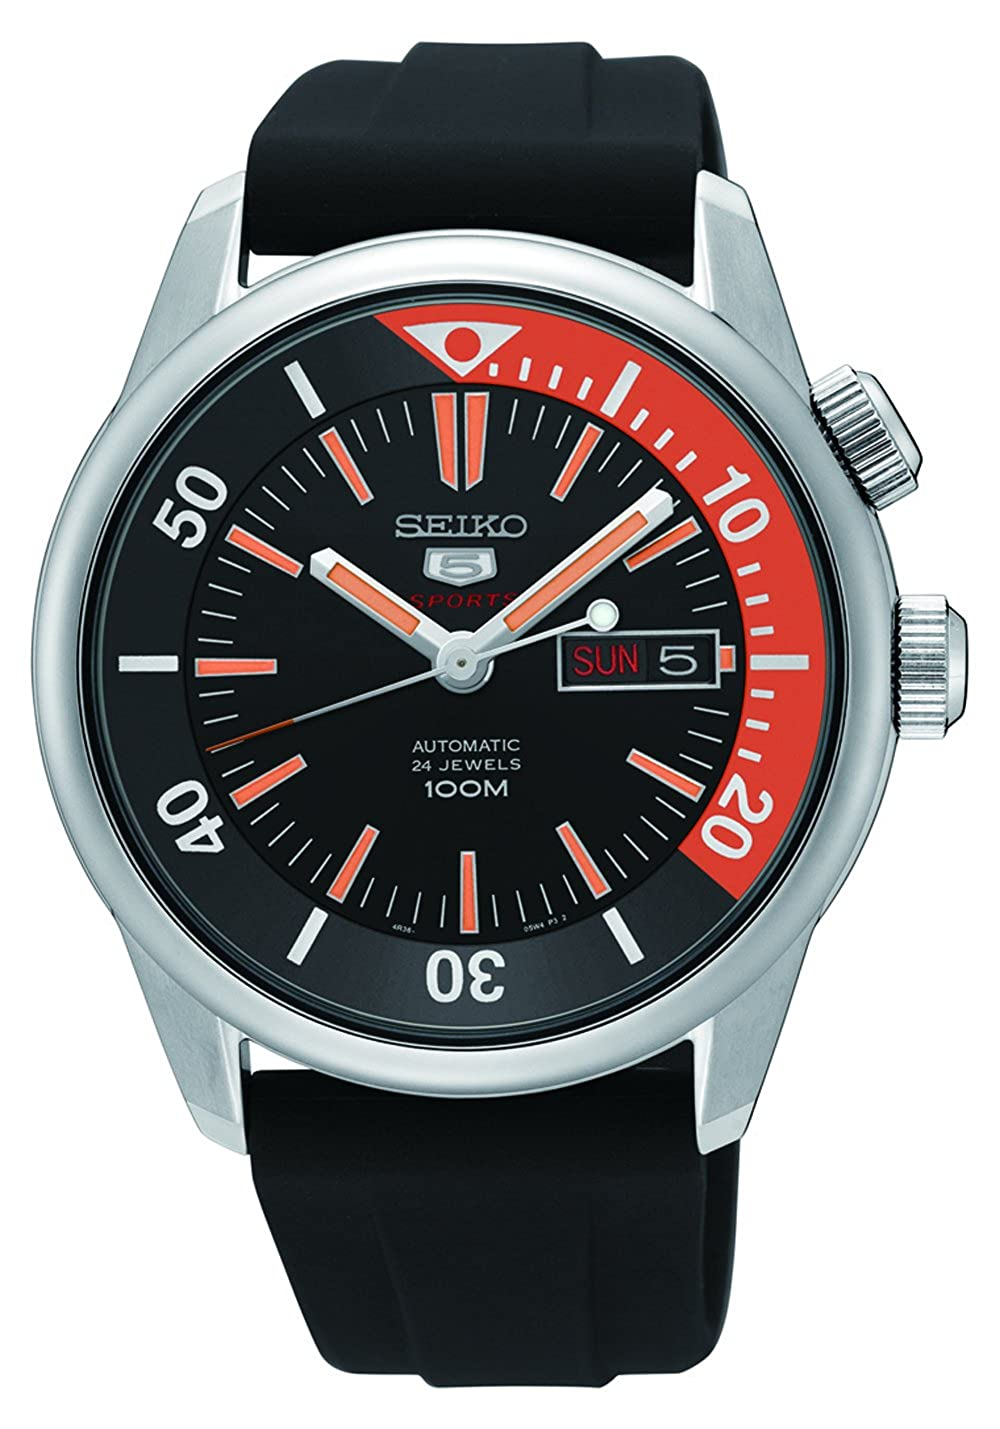 Seiko Stainless Steel Case and Rubber Strap, 24 Jewels - Silver/Black - Mens Japanese Watch - SRPB31K1 | Amazon.com